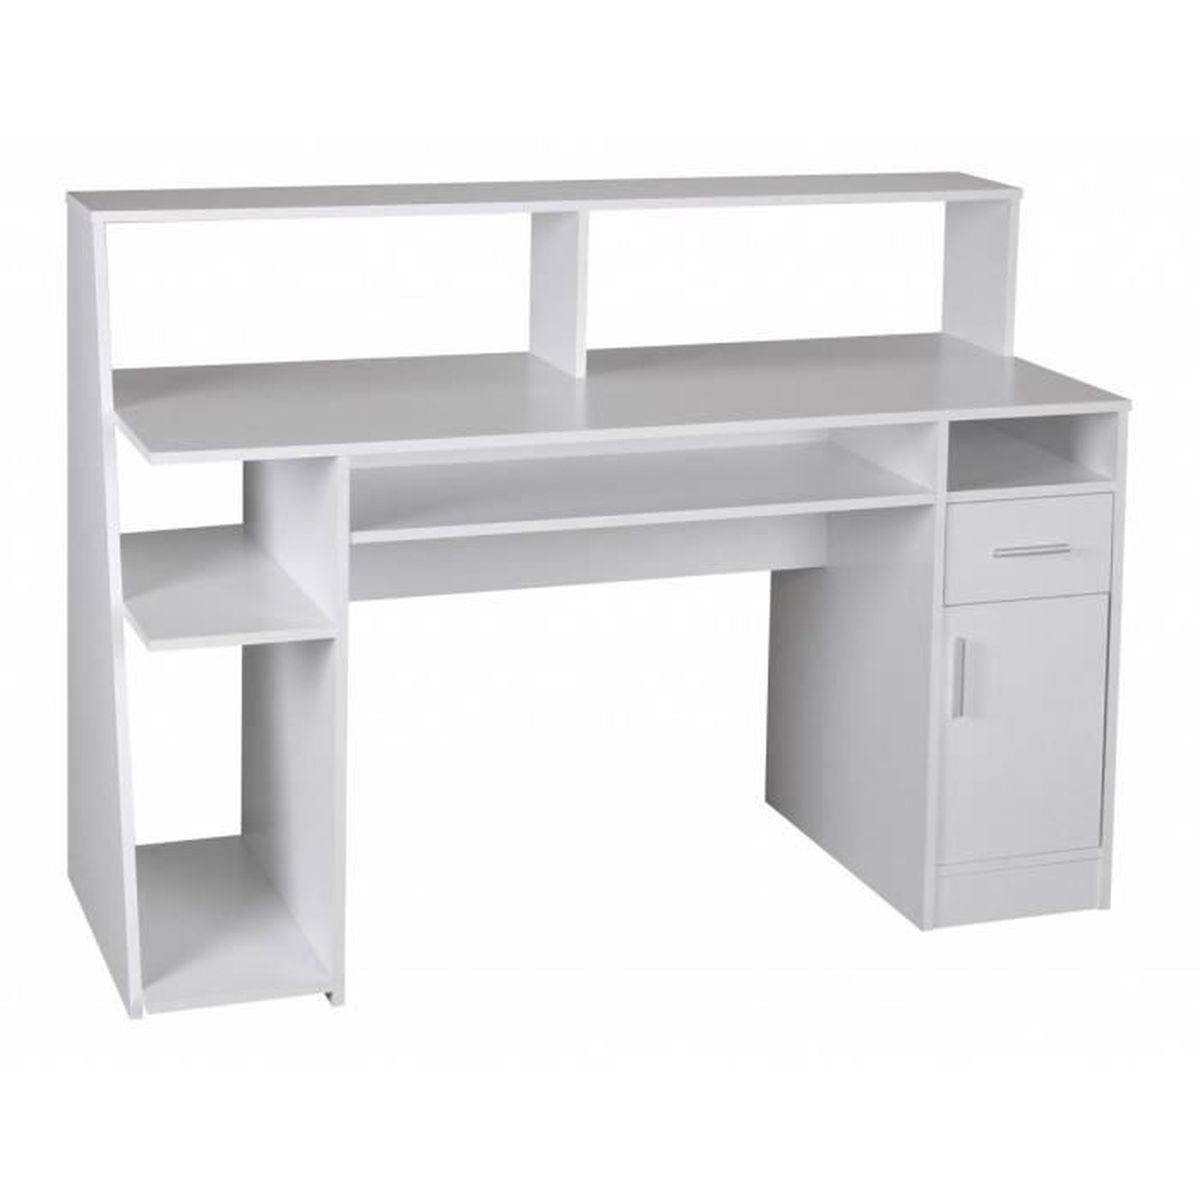 table d 39 ordinateur de bureau multifonctionnelle de table tablette de bureau blanc avec tiroirs. Black Bedroom Furniture Sets. Home Design Ideas